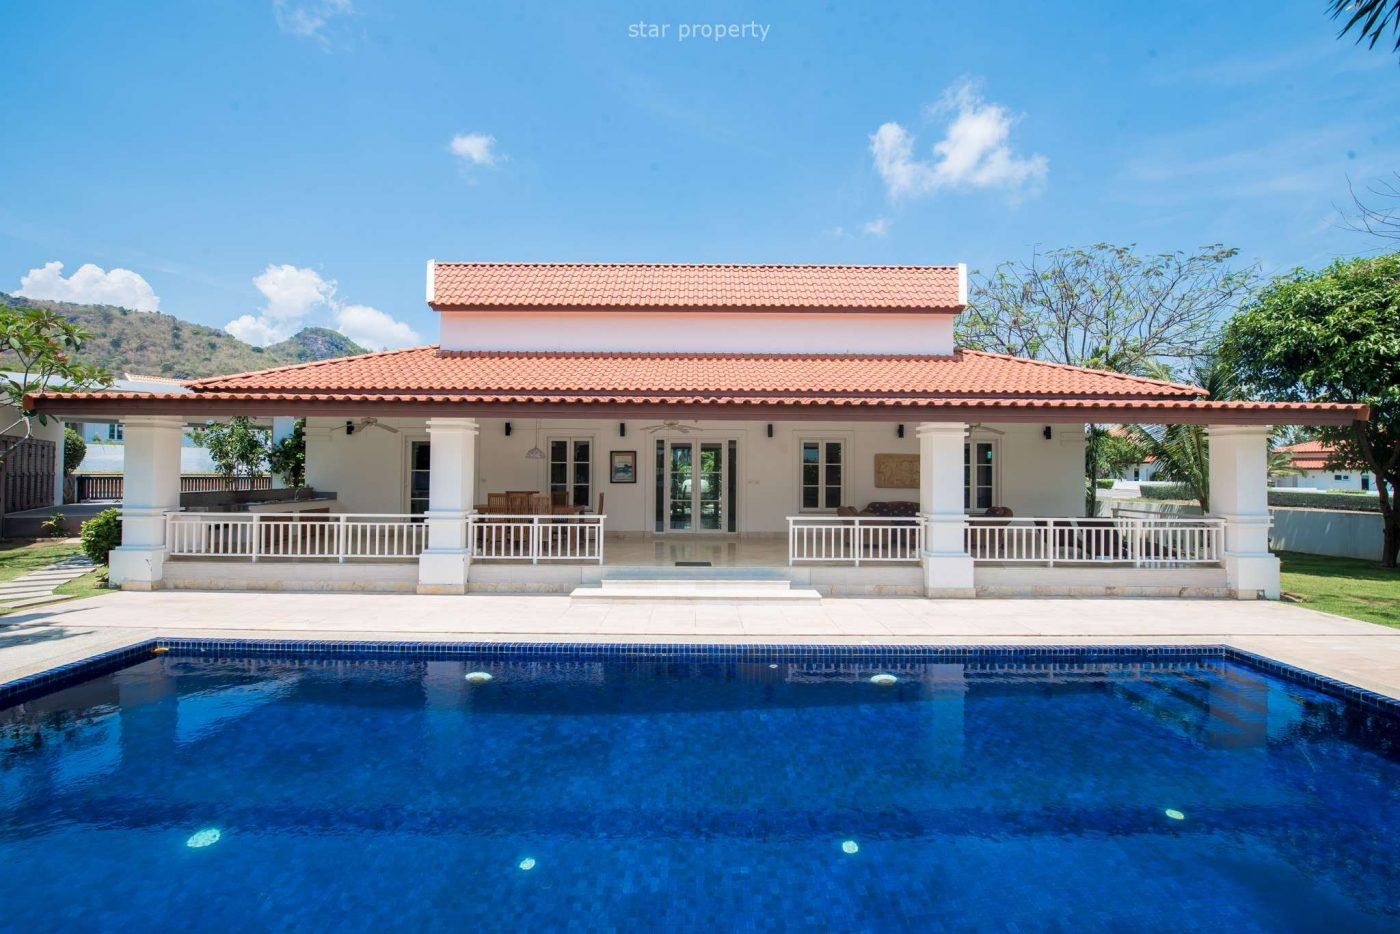 Beautiful 3 Bedroom Pool Villa at Banyan Golf Course Hua Hin at Hua Hin District, Prachuap Khiri Khan, Thailand